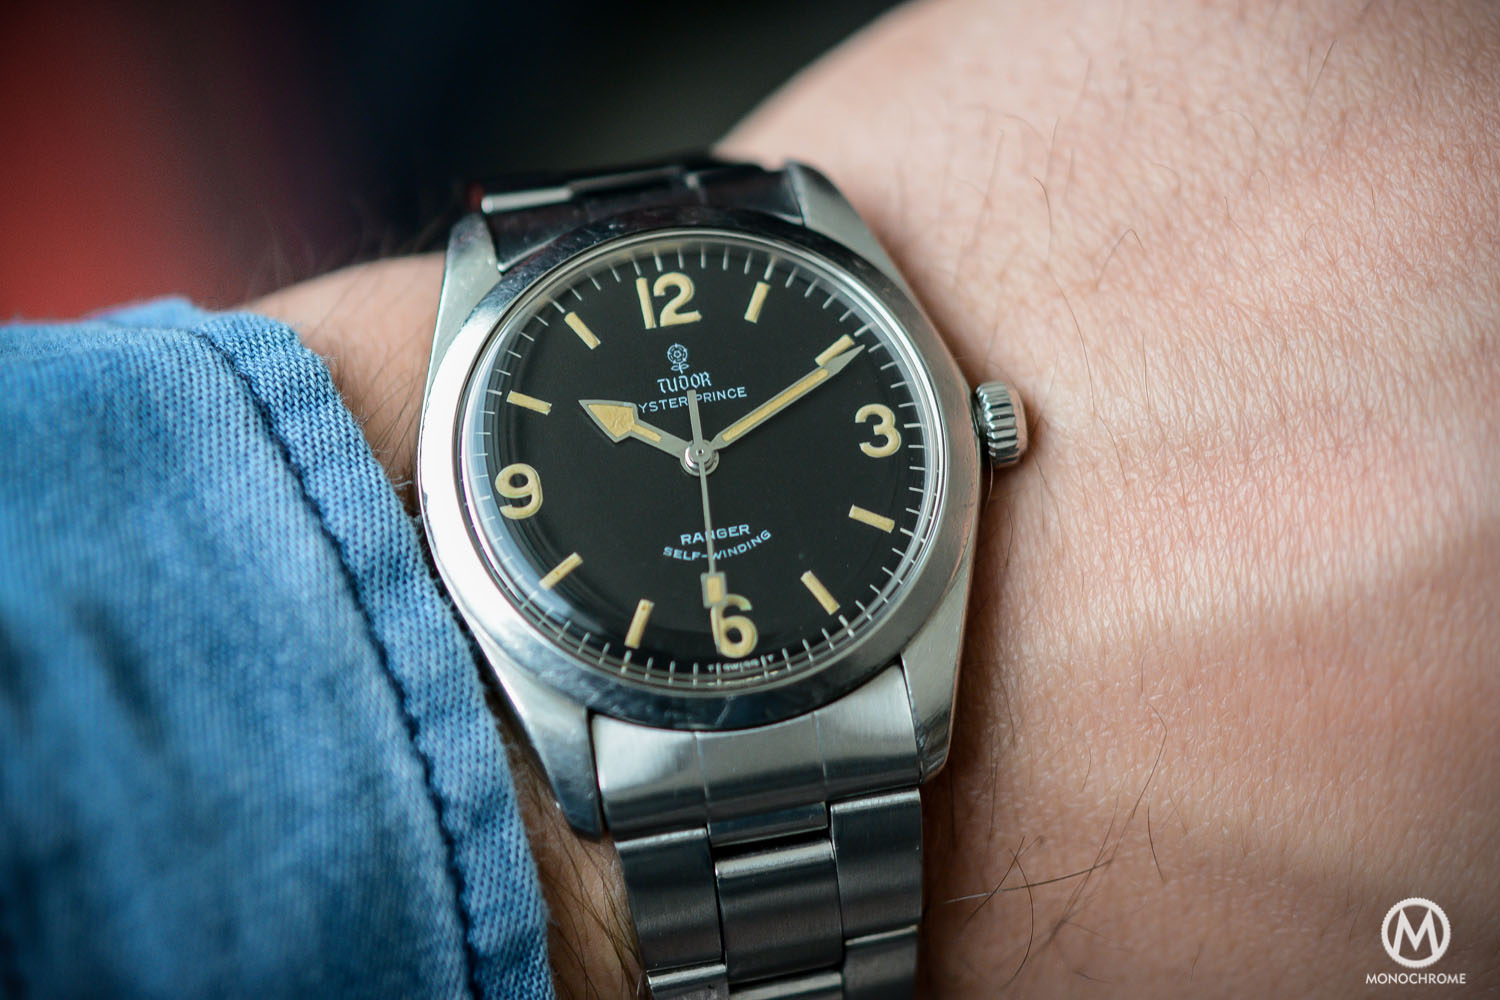 Tudor and its Heritage – The old and new Tudor Ranger face to face